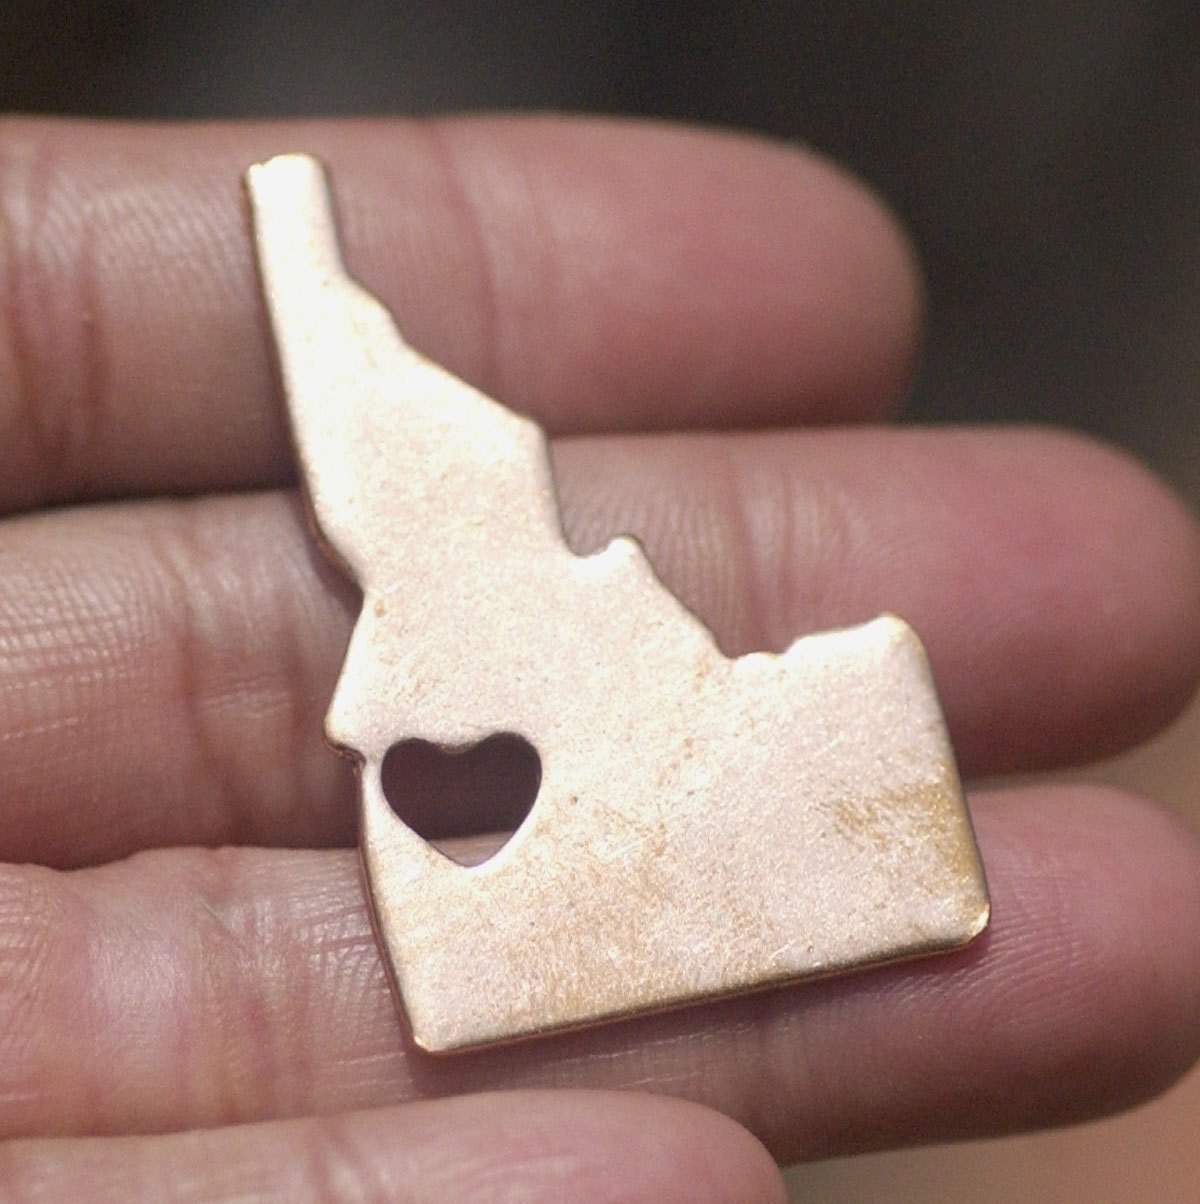 Idaho State With Heart Chubby Cutout for Enameling Metalworking Stamping Texturing Blank Variety of Metals